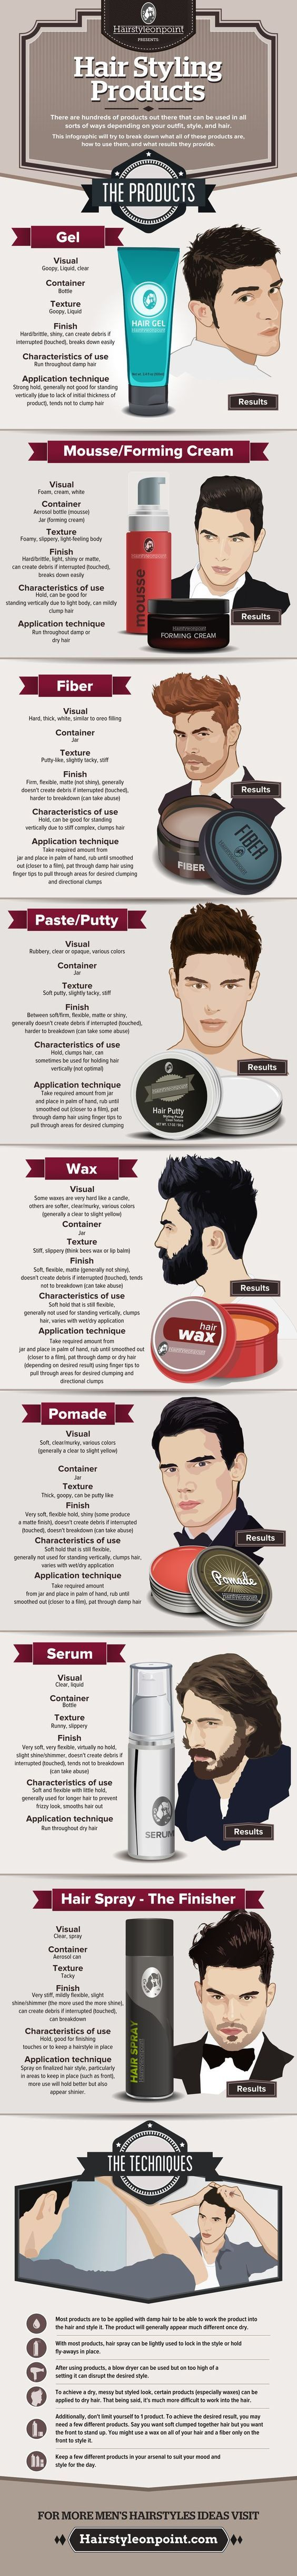 Hair Styling Products 150ppp Long Hair Styles Men Hair And Beard Styles Beard Styles